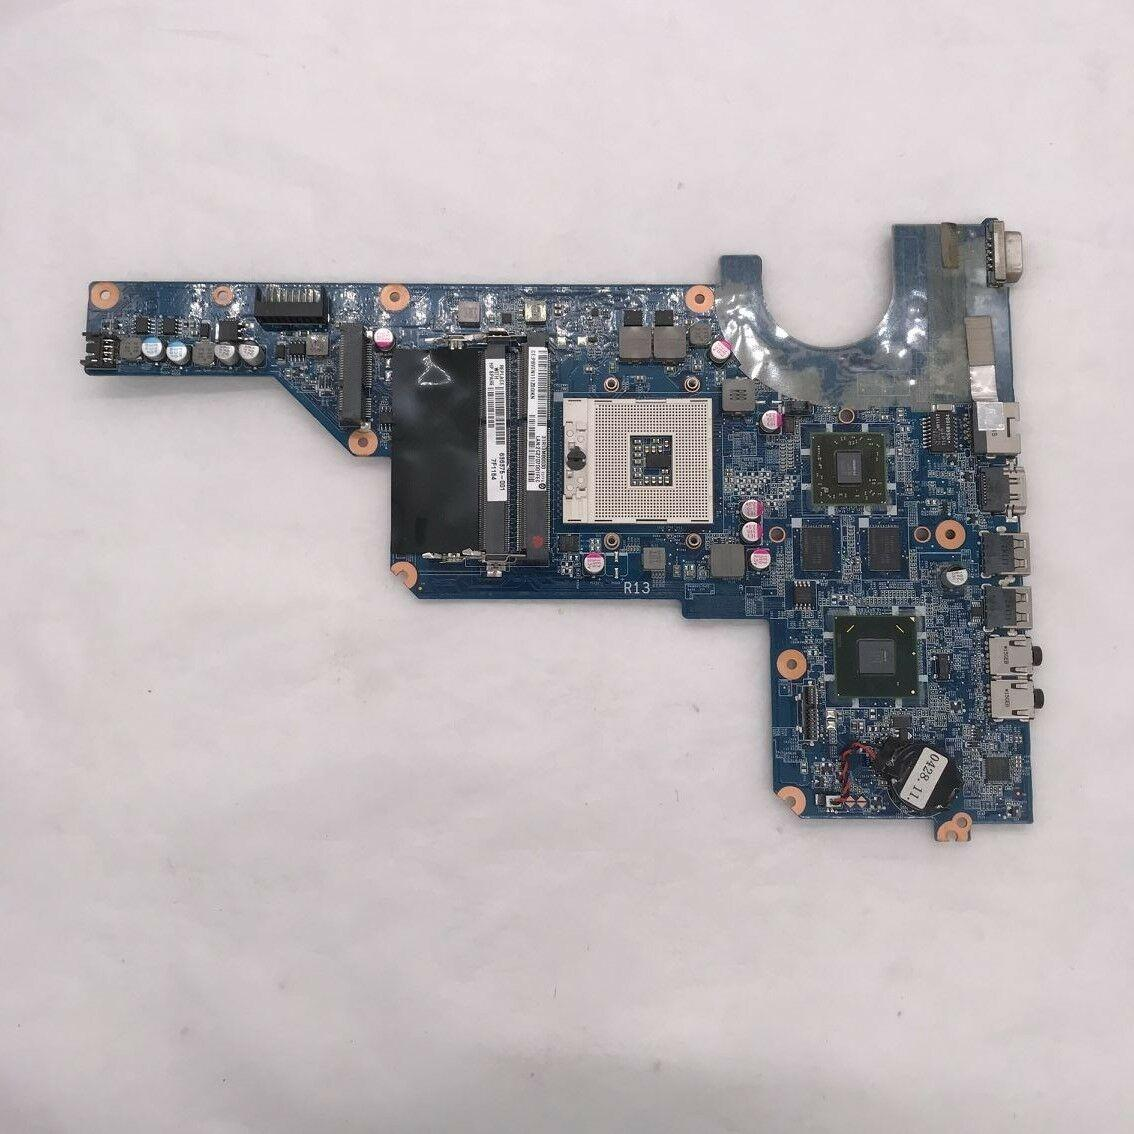 636375-001 DAOR13MB6E0 fit for HP pavilion G4-1000 G4 G6 laptop motherboard with hm65 chipset 100% full tested ok